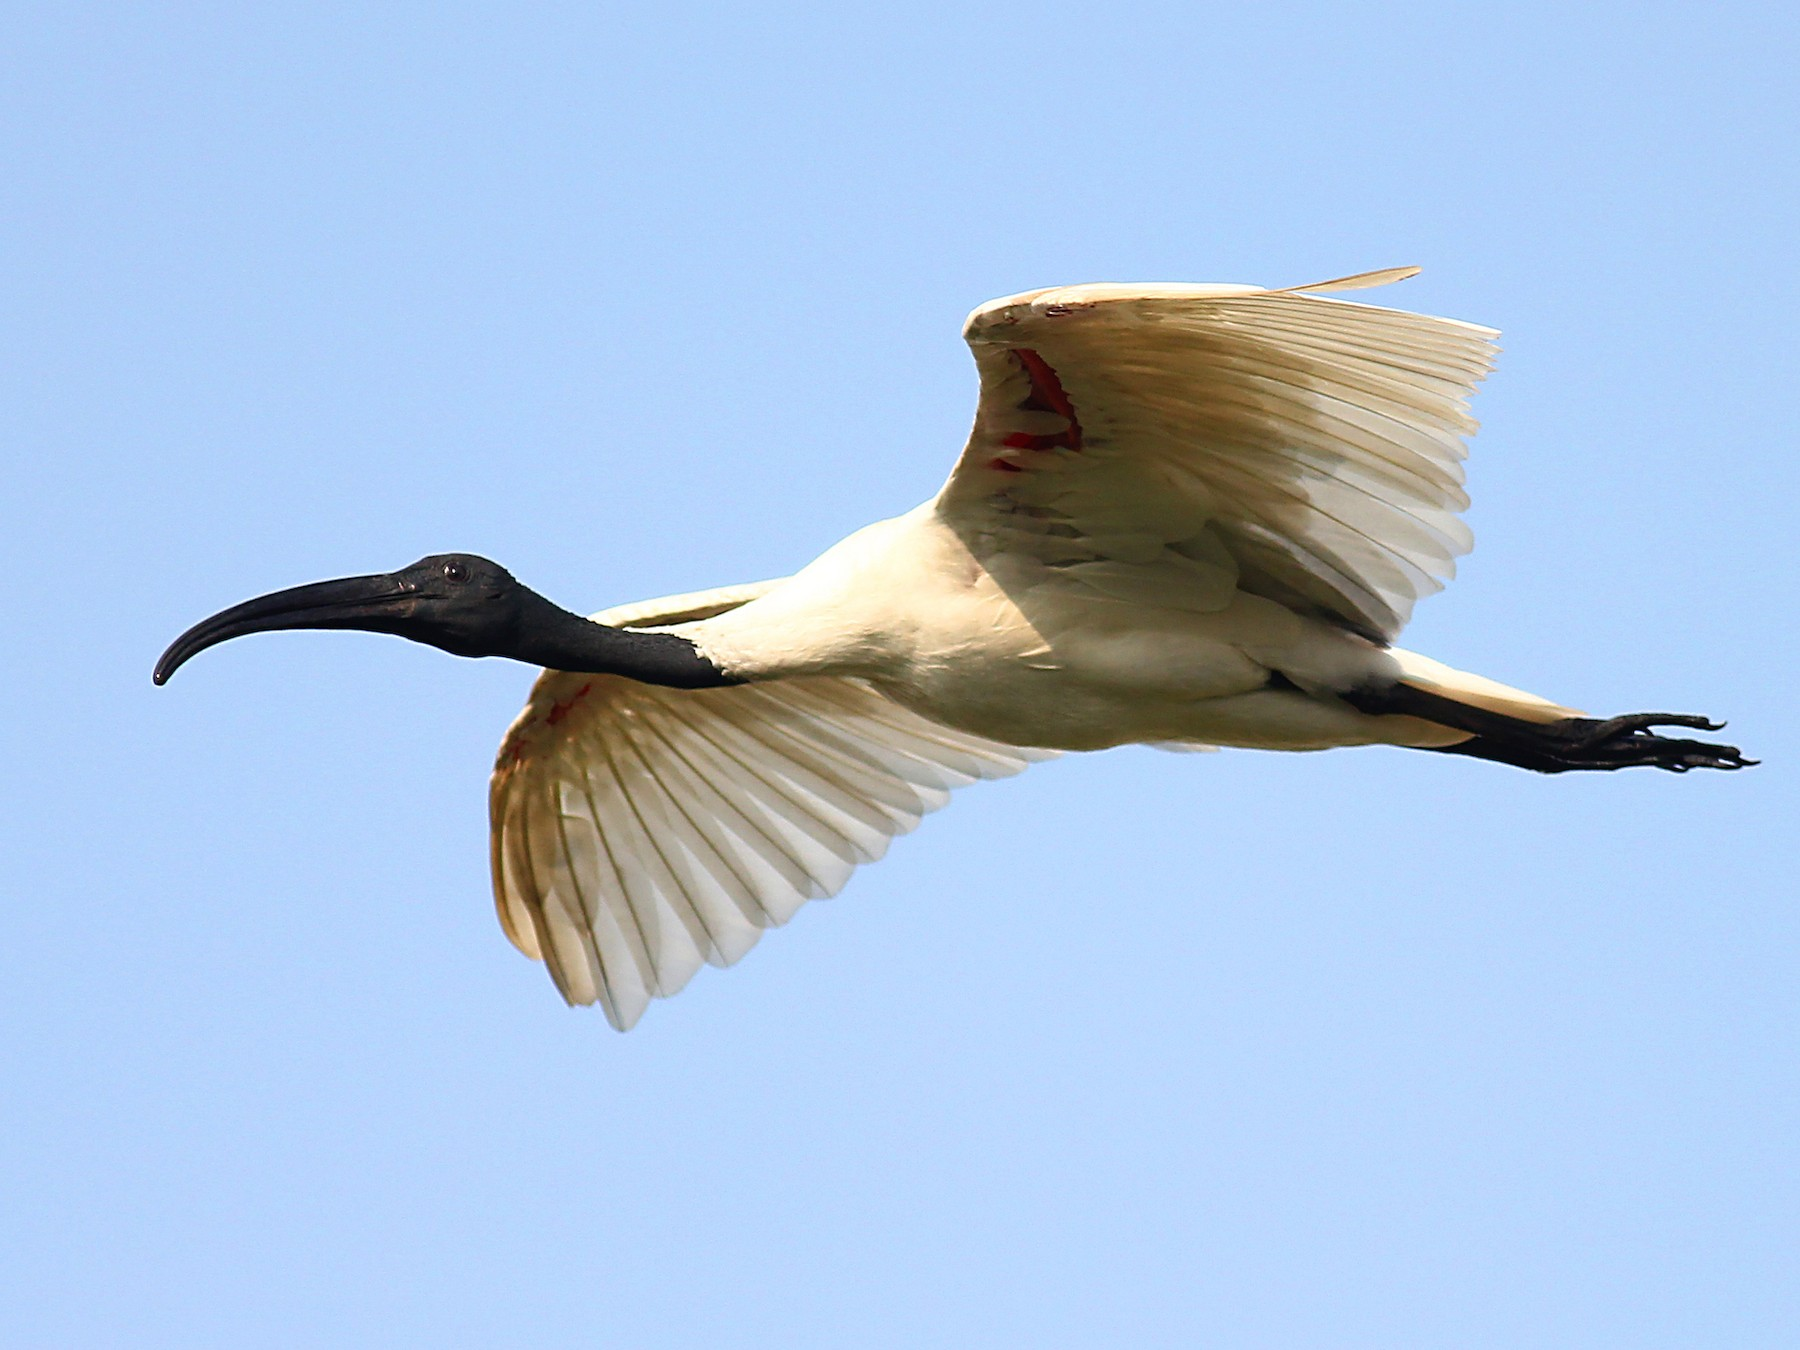 Black-headed Ibis - Aravind AM